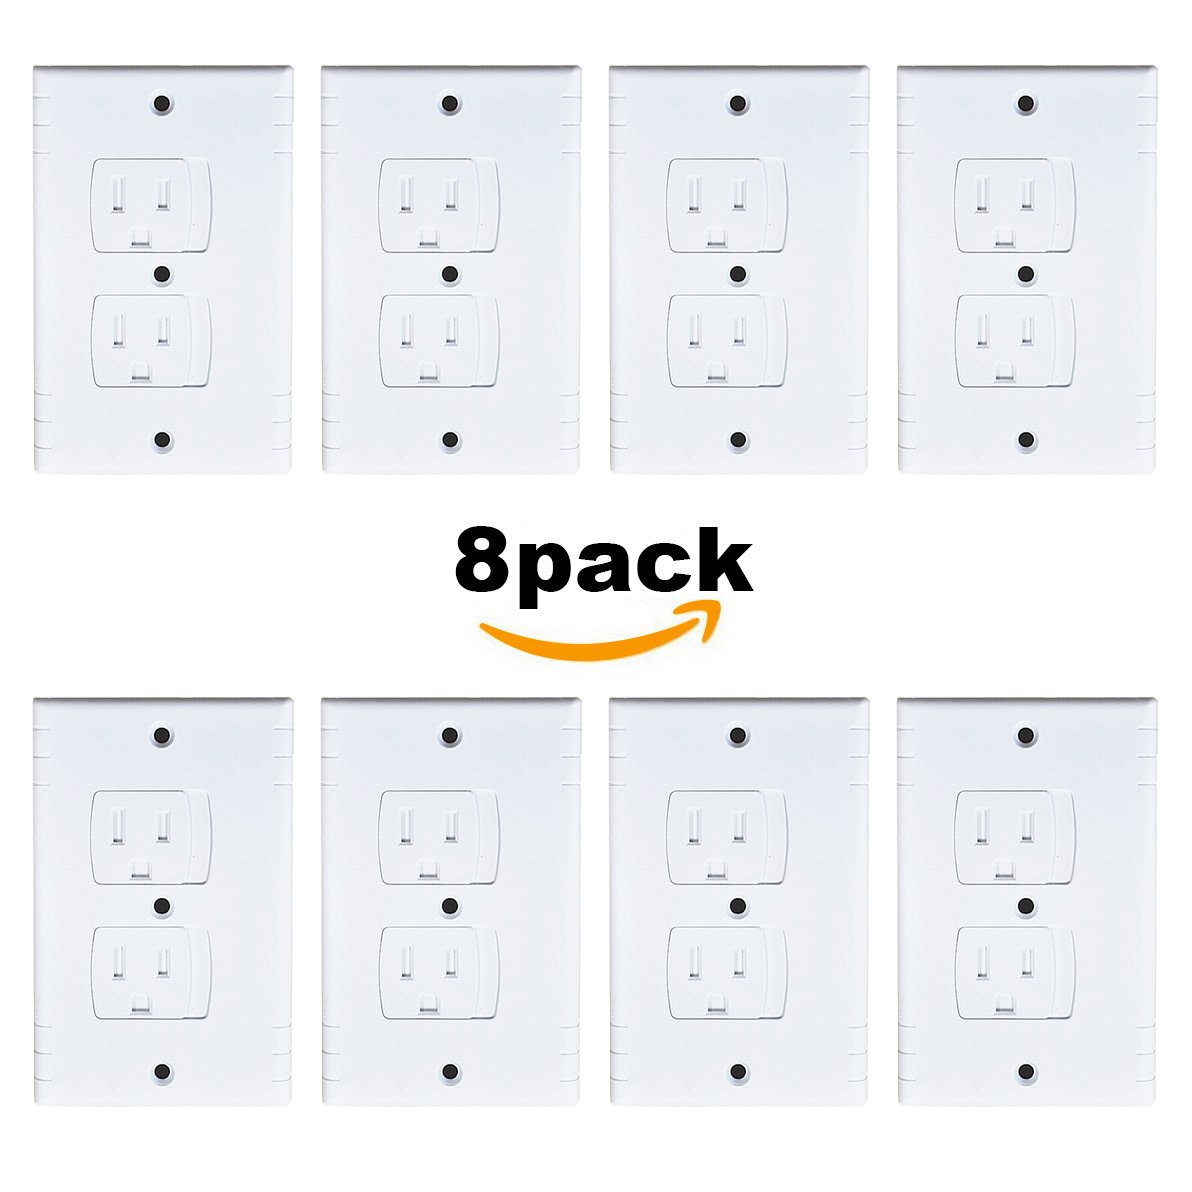 Baby Outlet Covers, Universal Self-Closing Electrical Outlet Cover, Extra Safe Child Safety Guards Wall Socket Plug, Flame Retardant ABS, BPA-Free, Best House Protection Hardware Included (6 Pack) ModaBebis